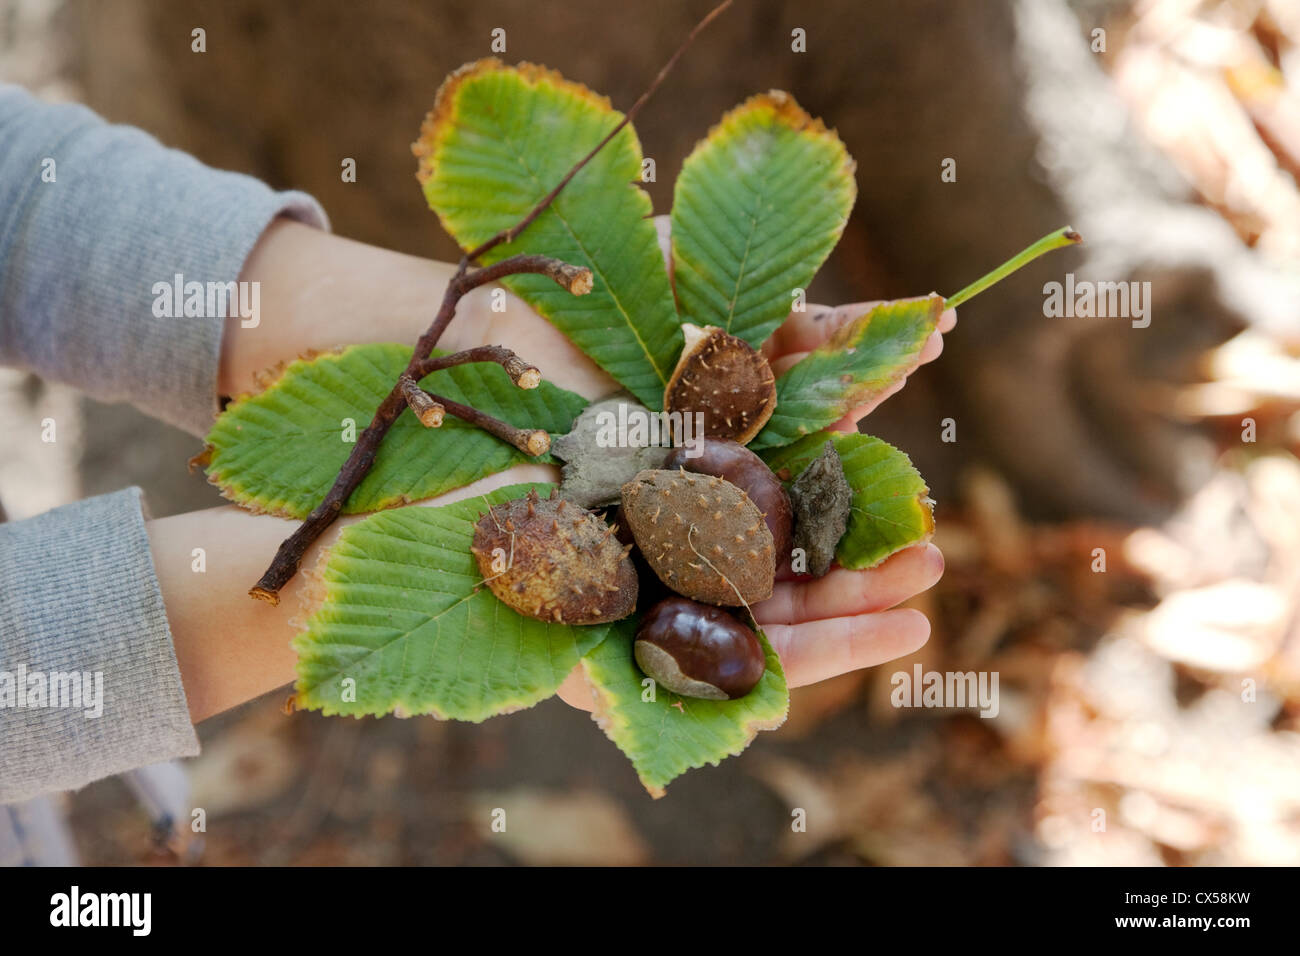 In the hands of a child branches, the leaves, fruits, seed and bark of Aesculus hippocastanum - Stock Image